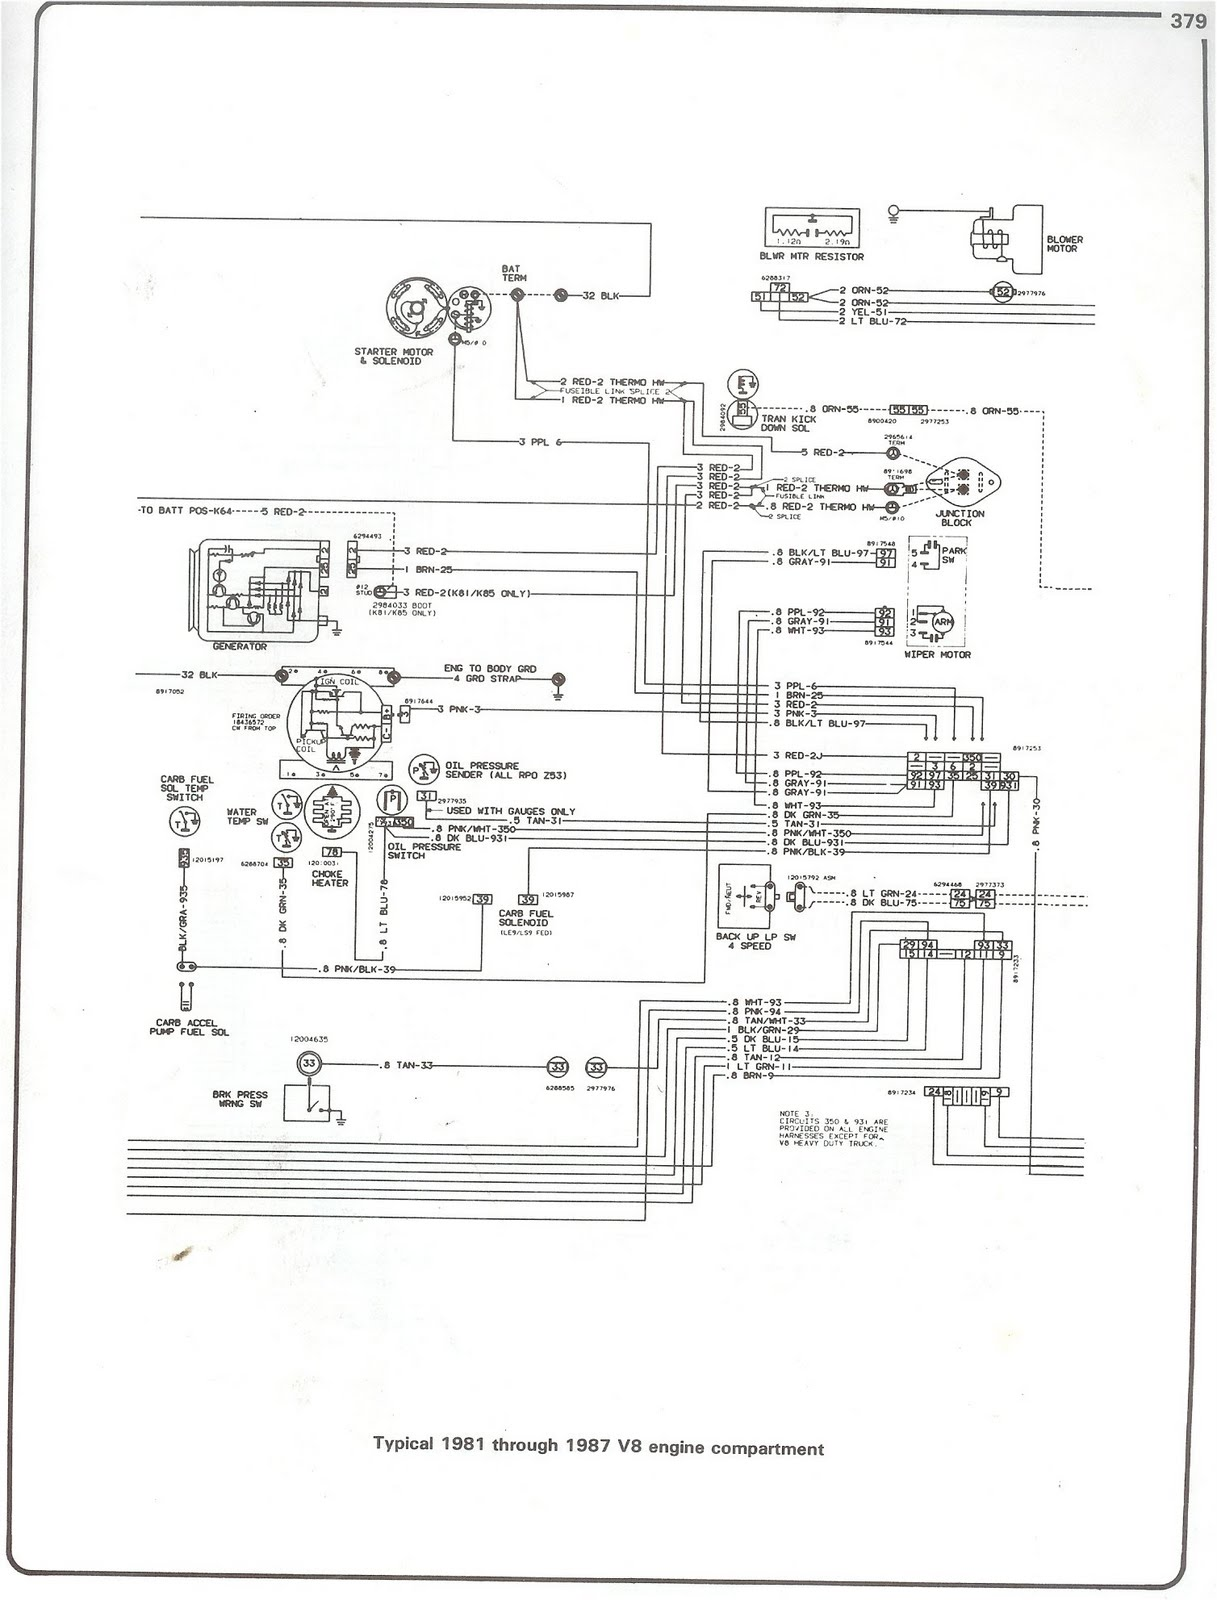 1981 Fiat Wiring Diagram Auto Electrical Free